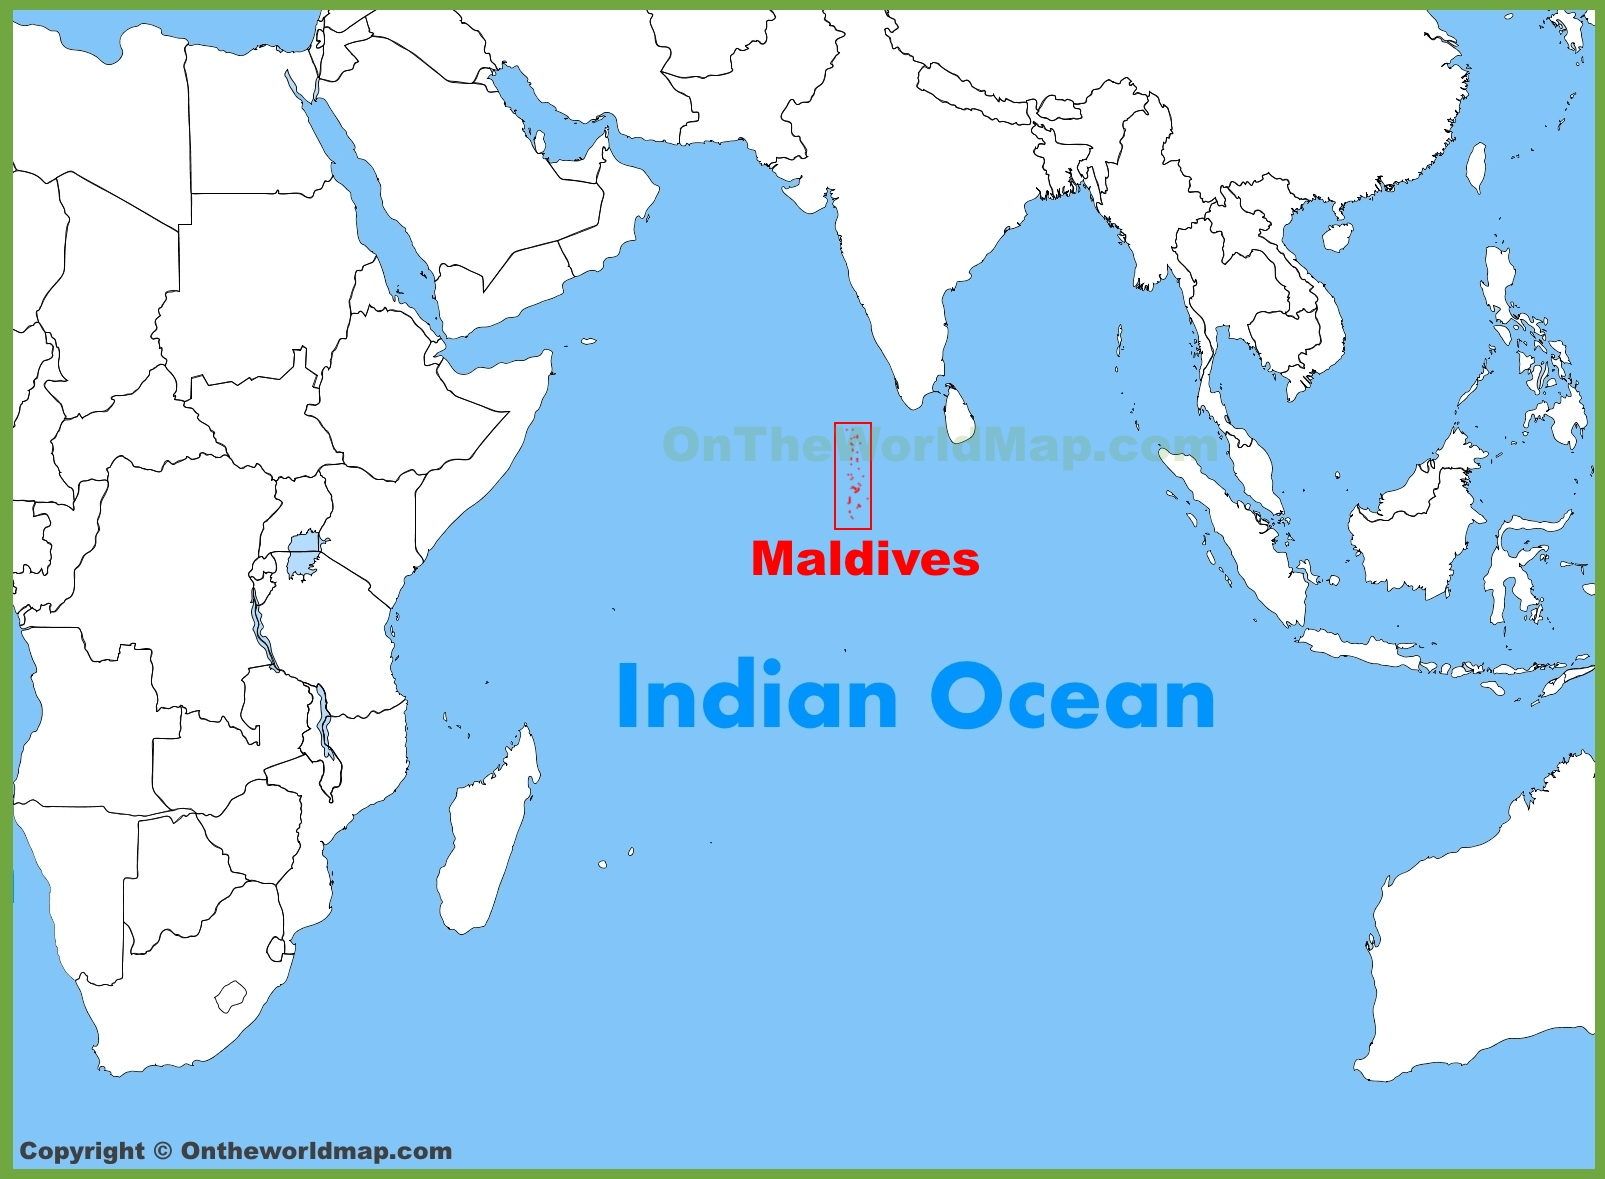 The Maldives On Map Maldives location on the Indian Ocean map